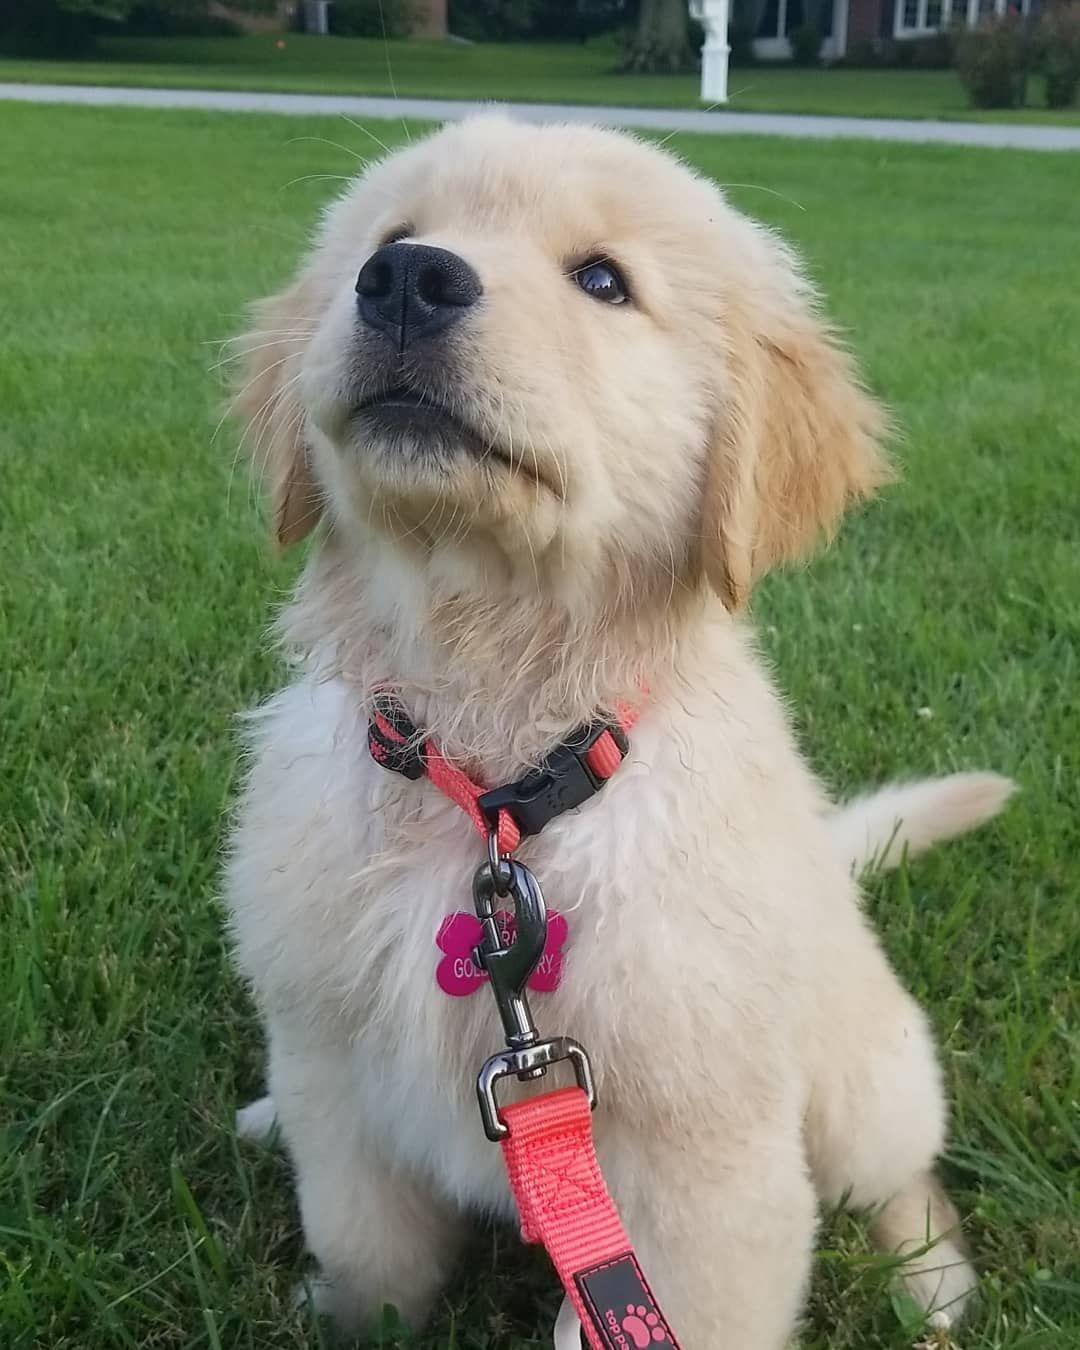 30 Best Dog Names For Gorgeous Golden Retrievers Pictures In